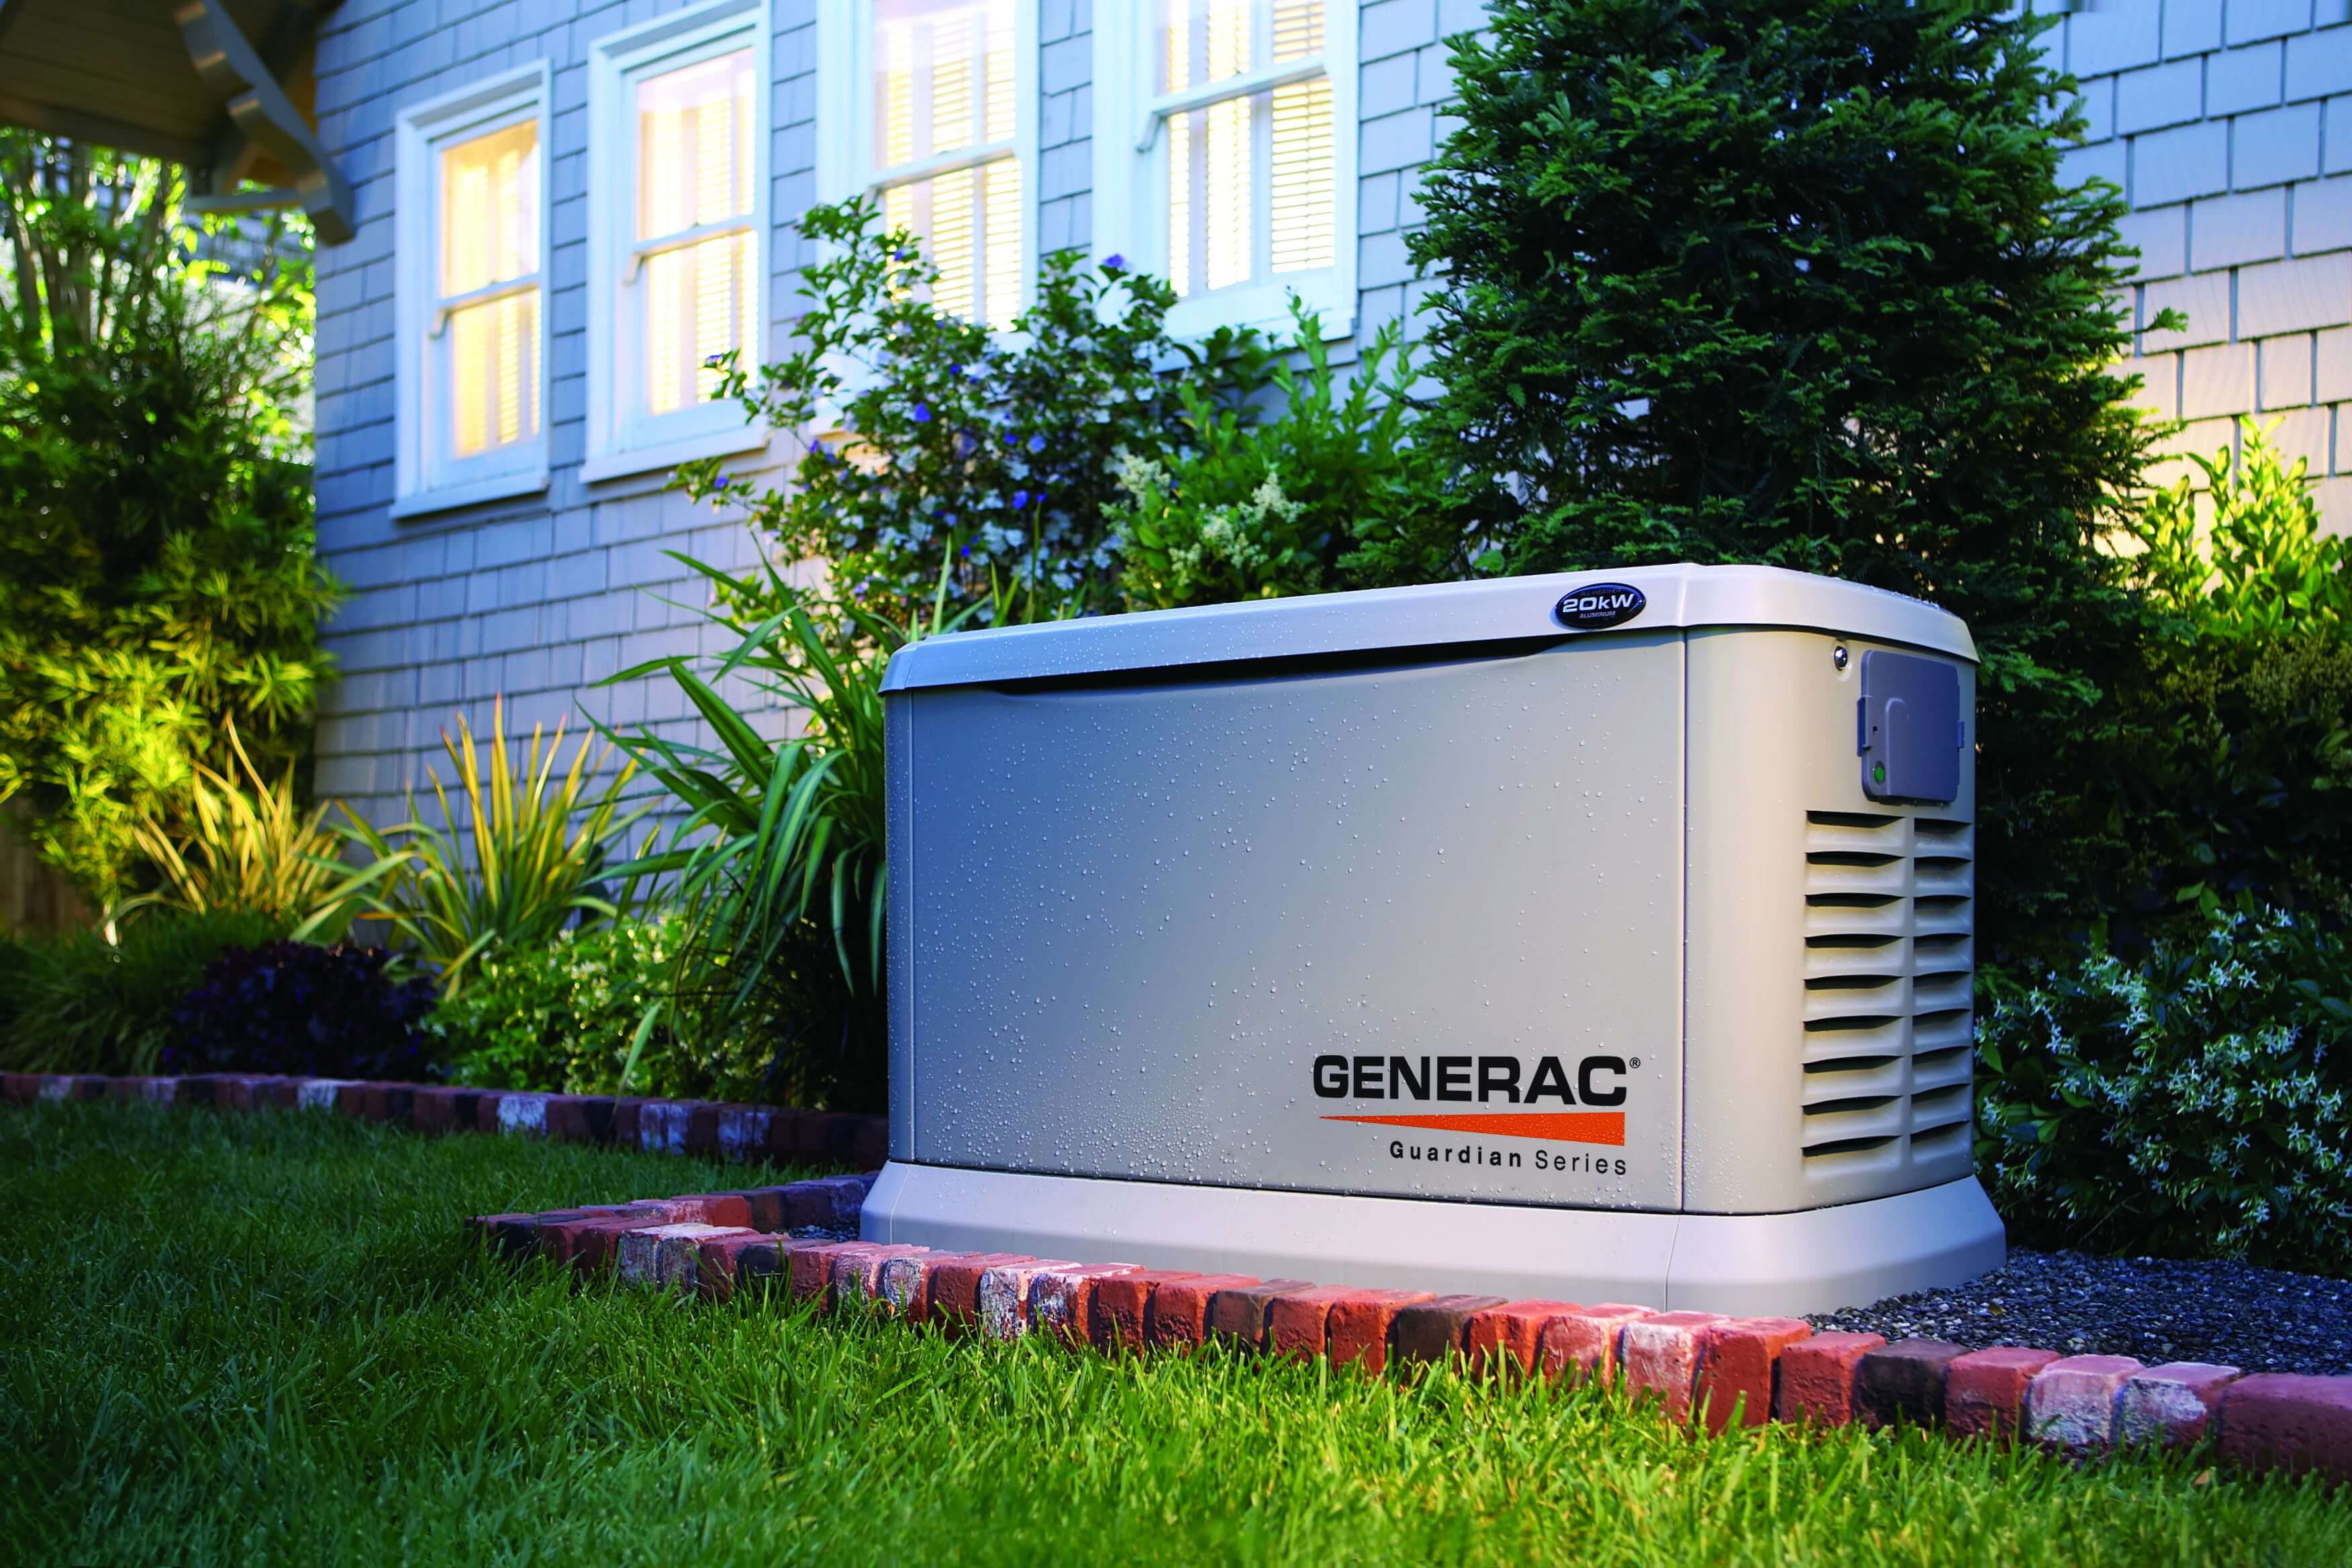 Generac Generator Review – Best Standby and Portable